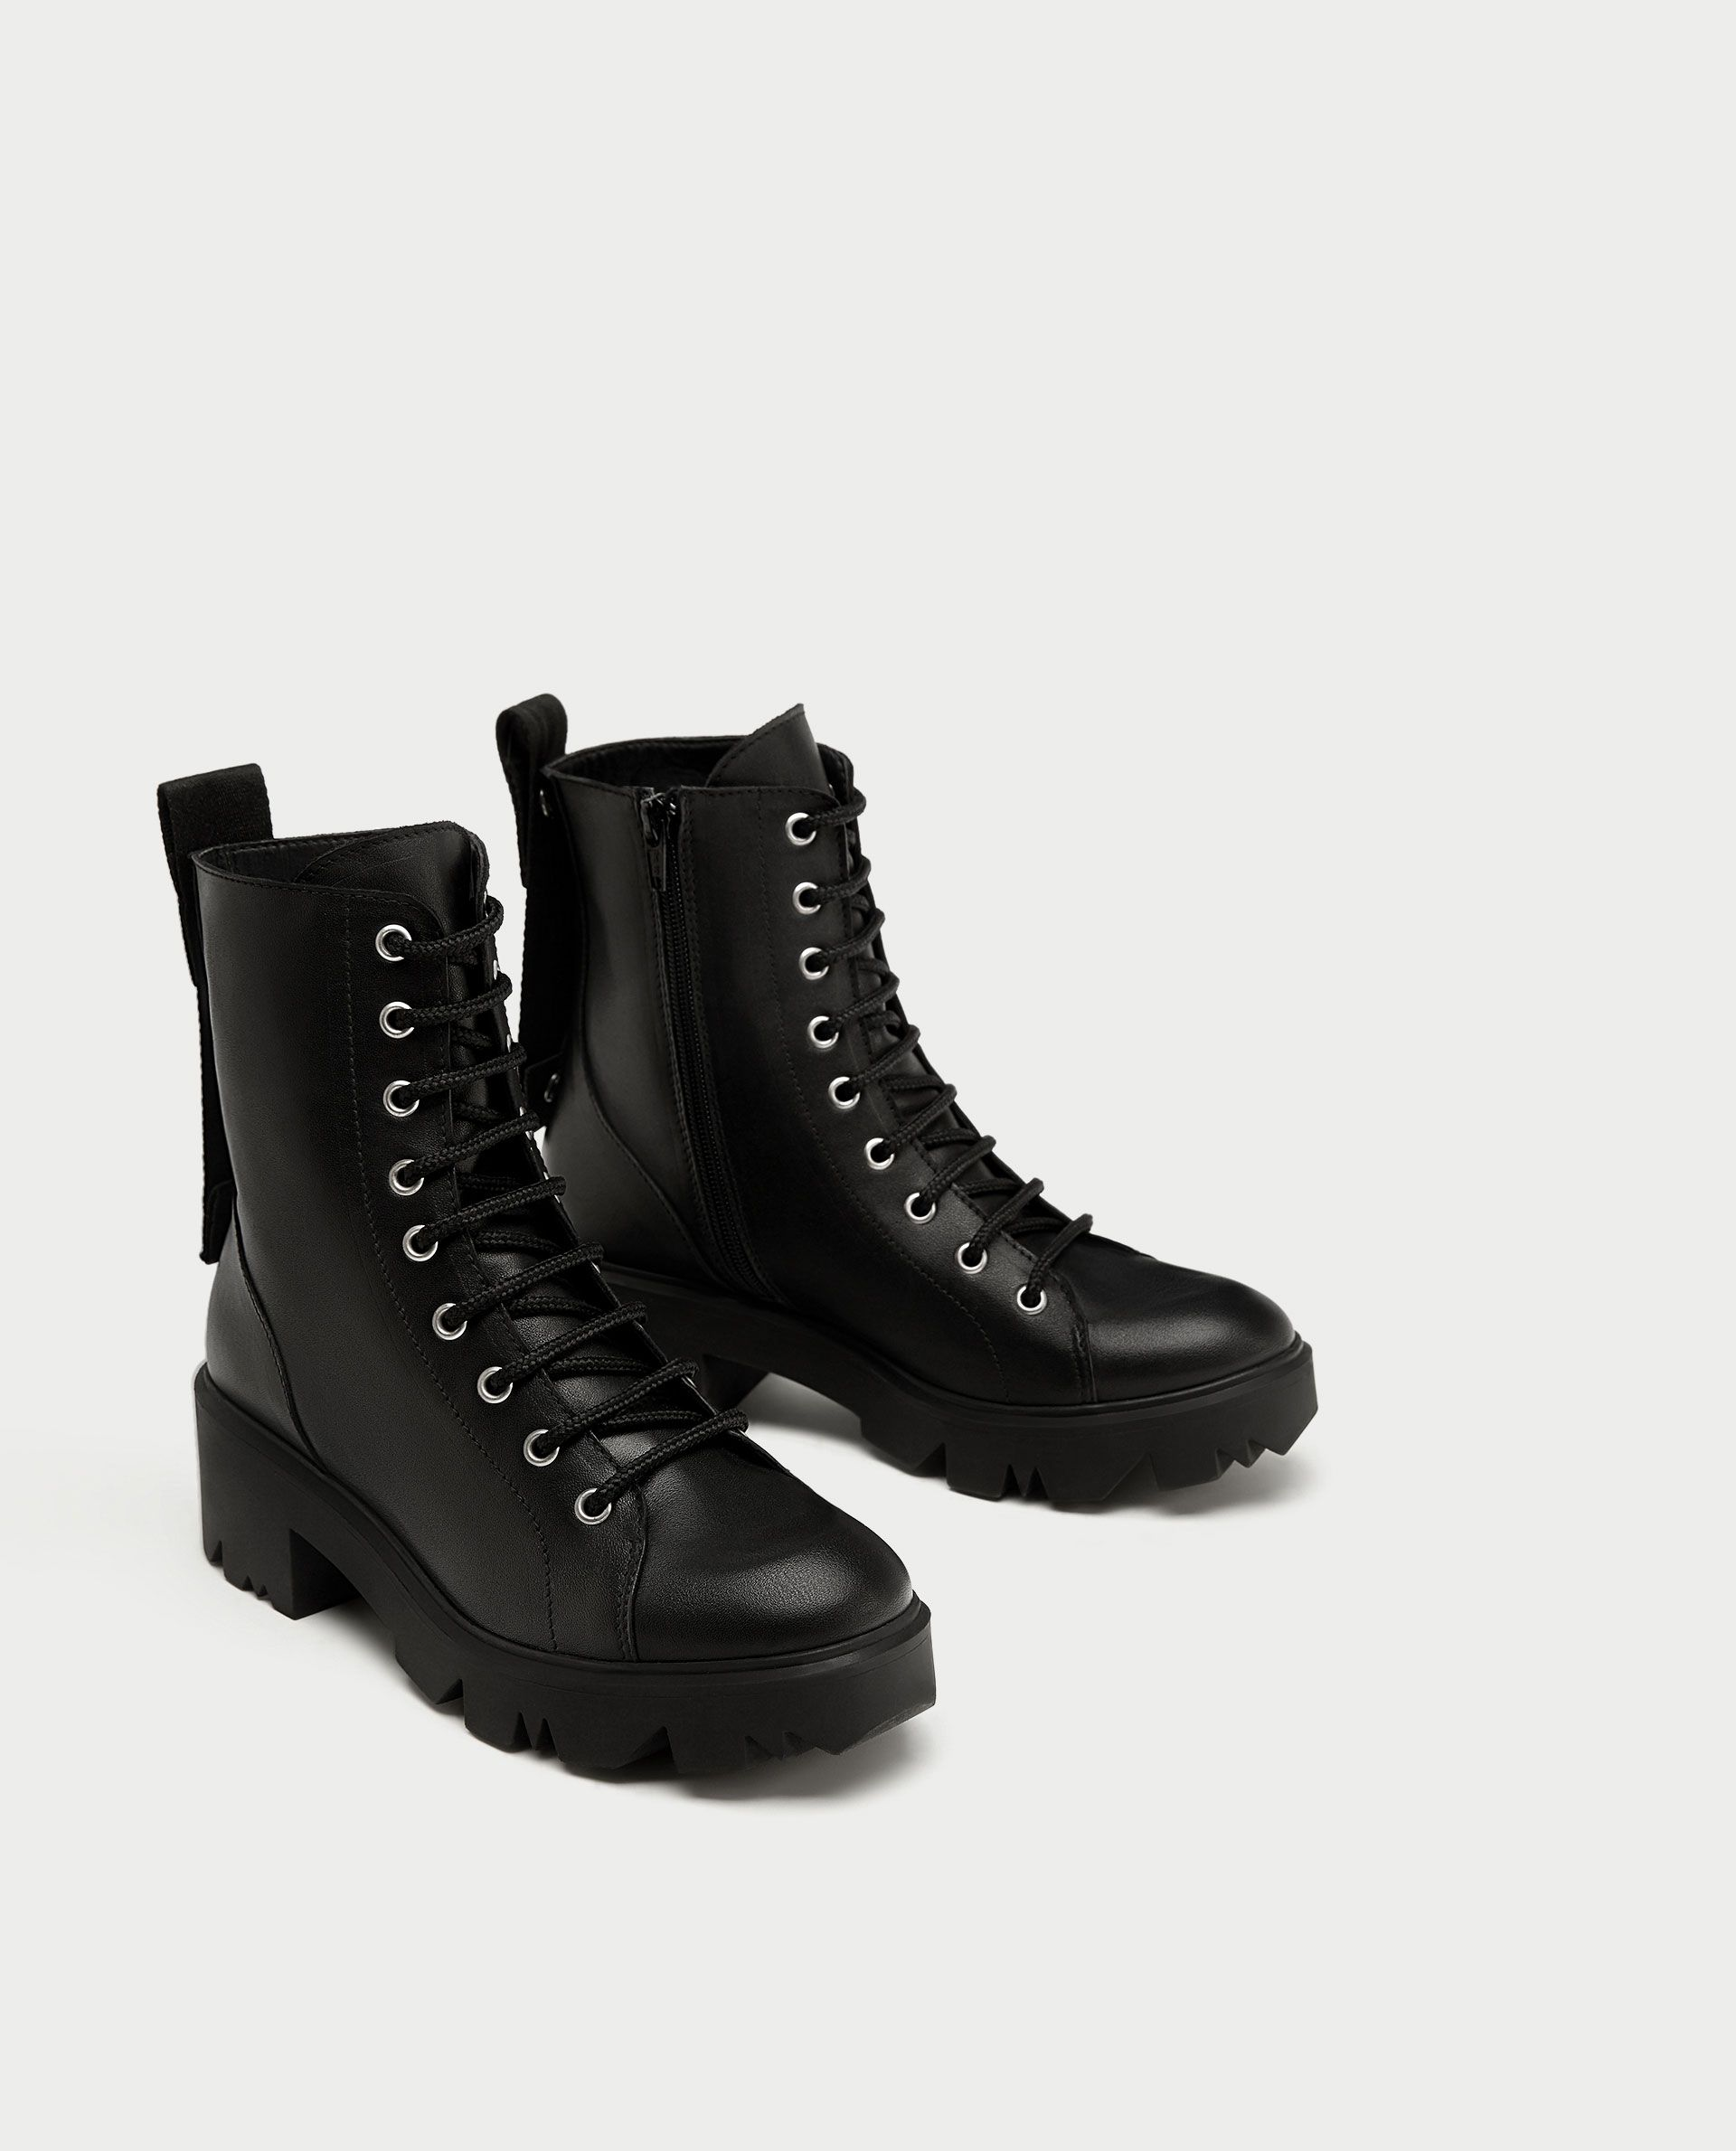 74bf2f866d8 Image 1 of FLAT LEATHER ANKLE BOOTS WITH SLOGAN from Zara ...